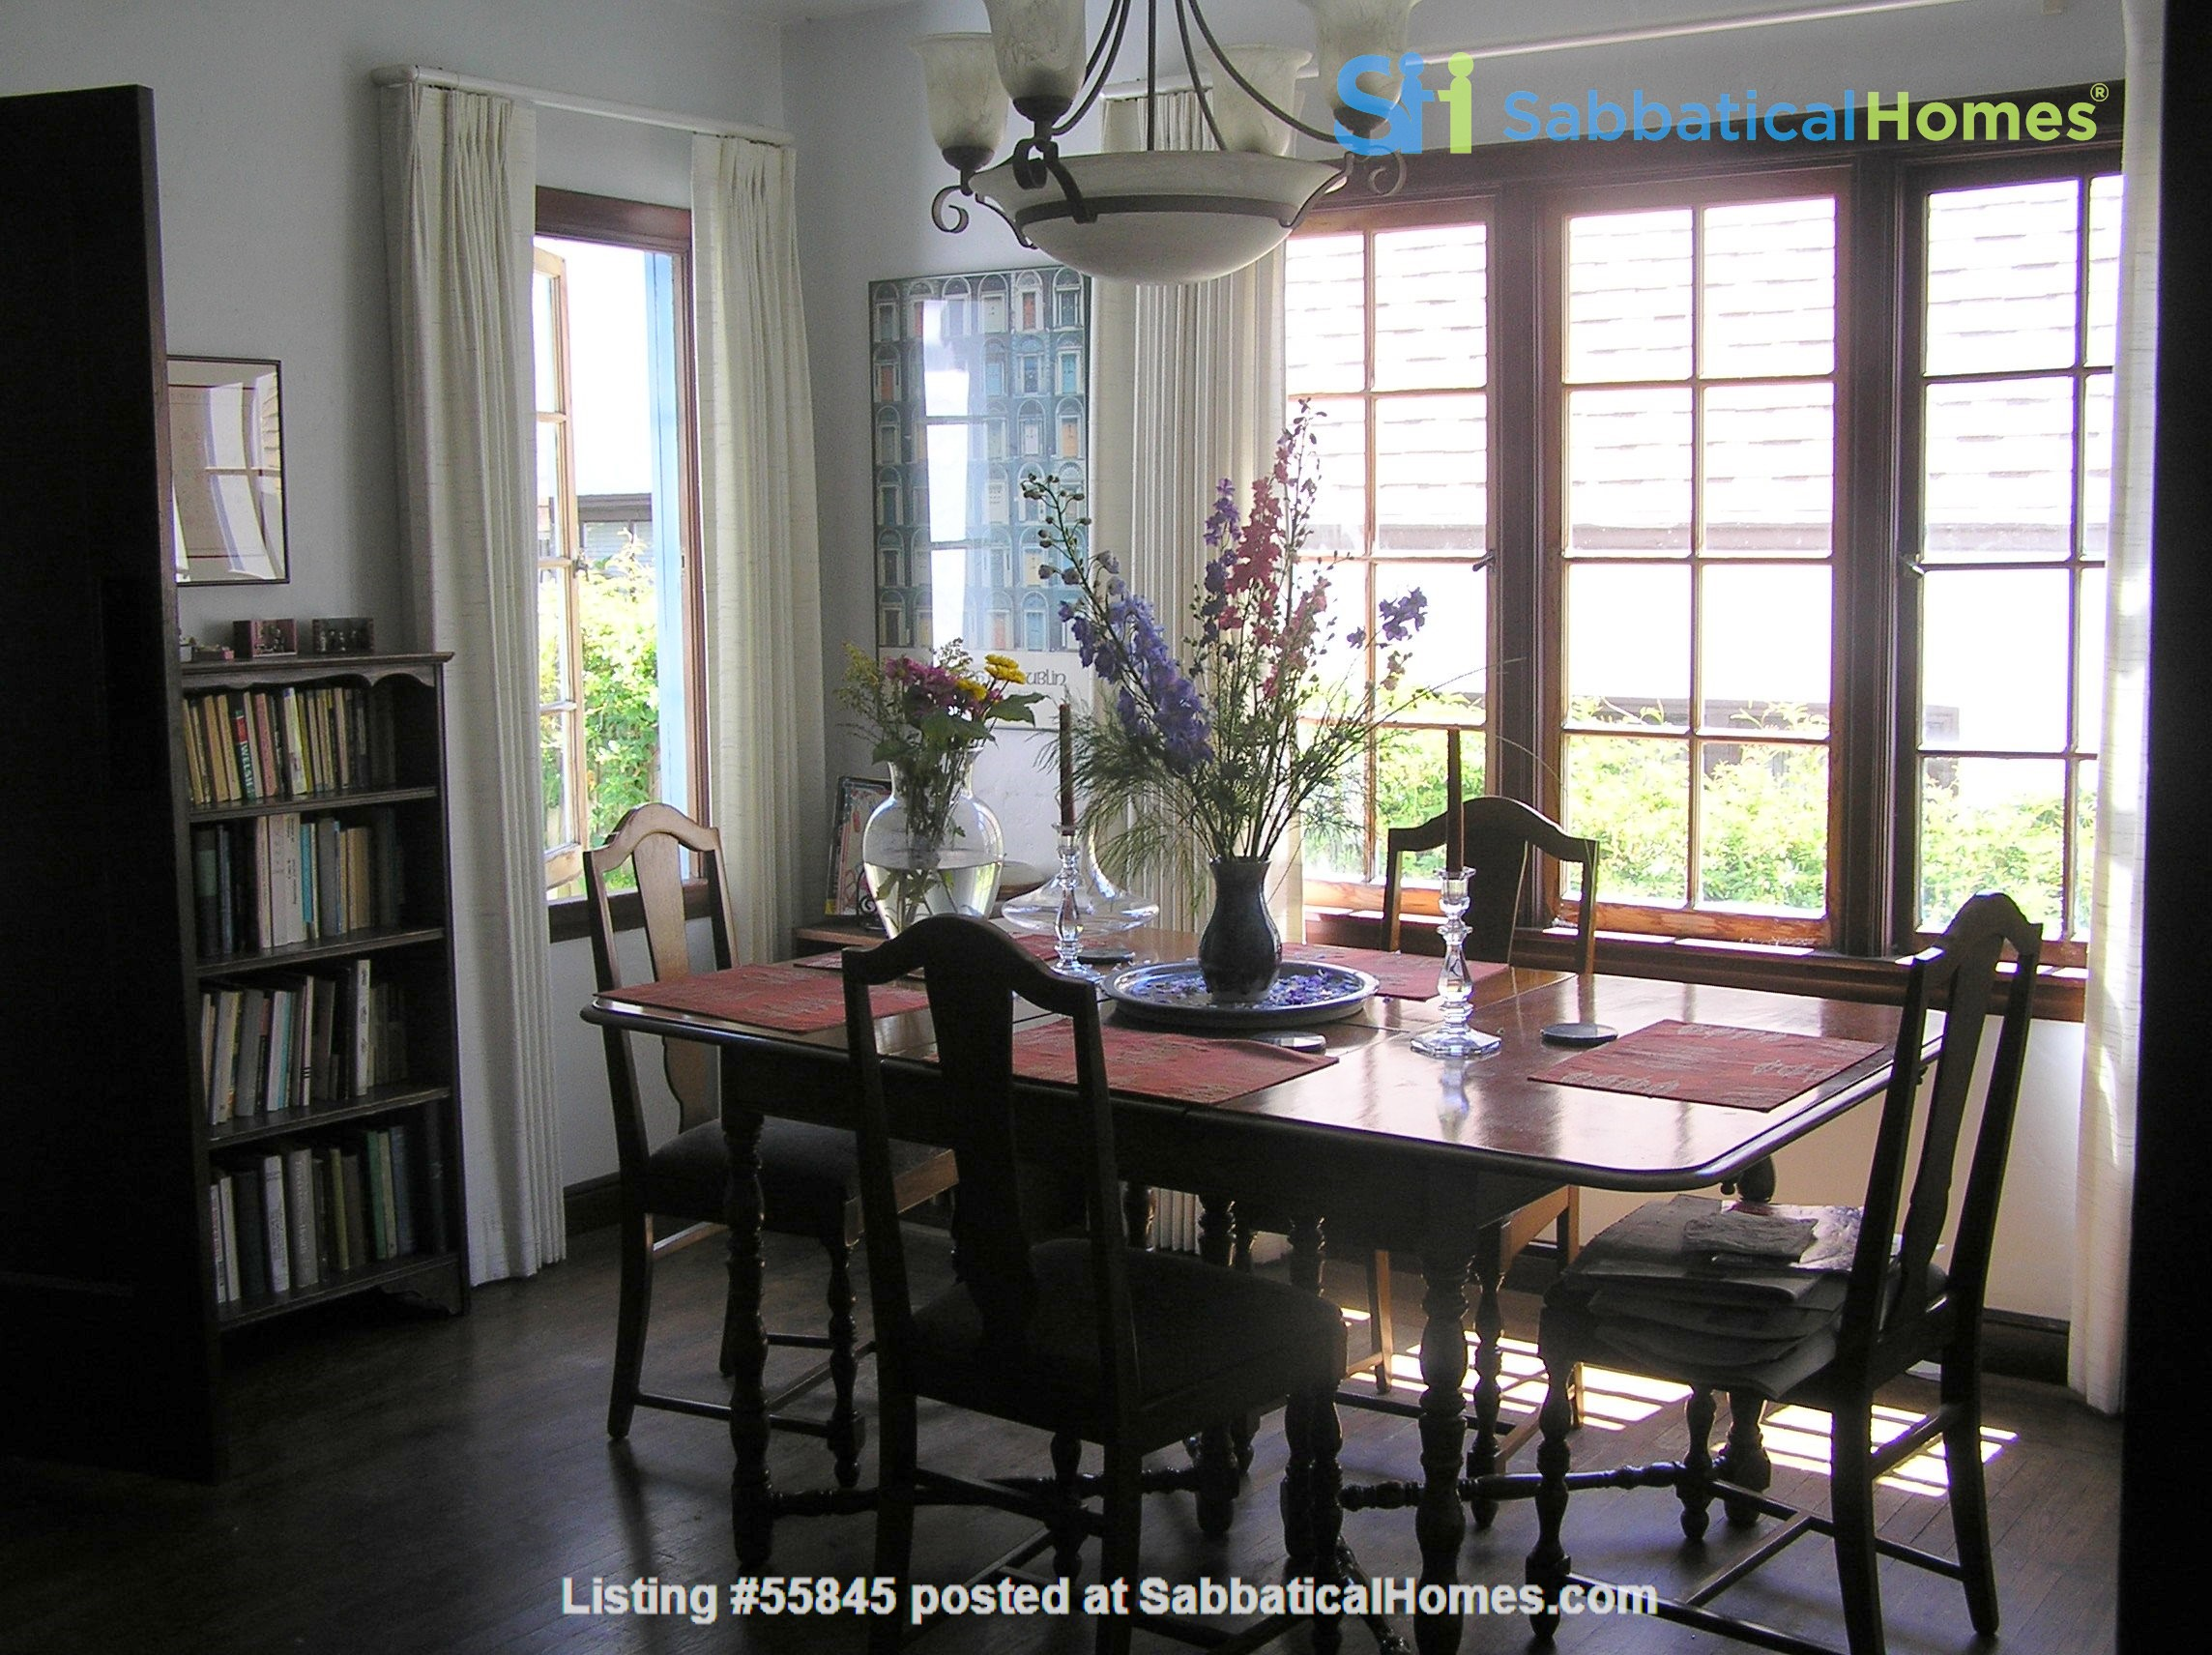 Well-located family home near parks, Gourmet Ghetto, UC Berkeley Home Rental in Berkeley, California, United States 0